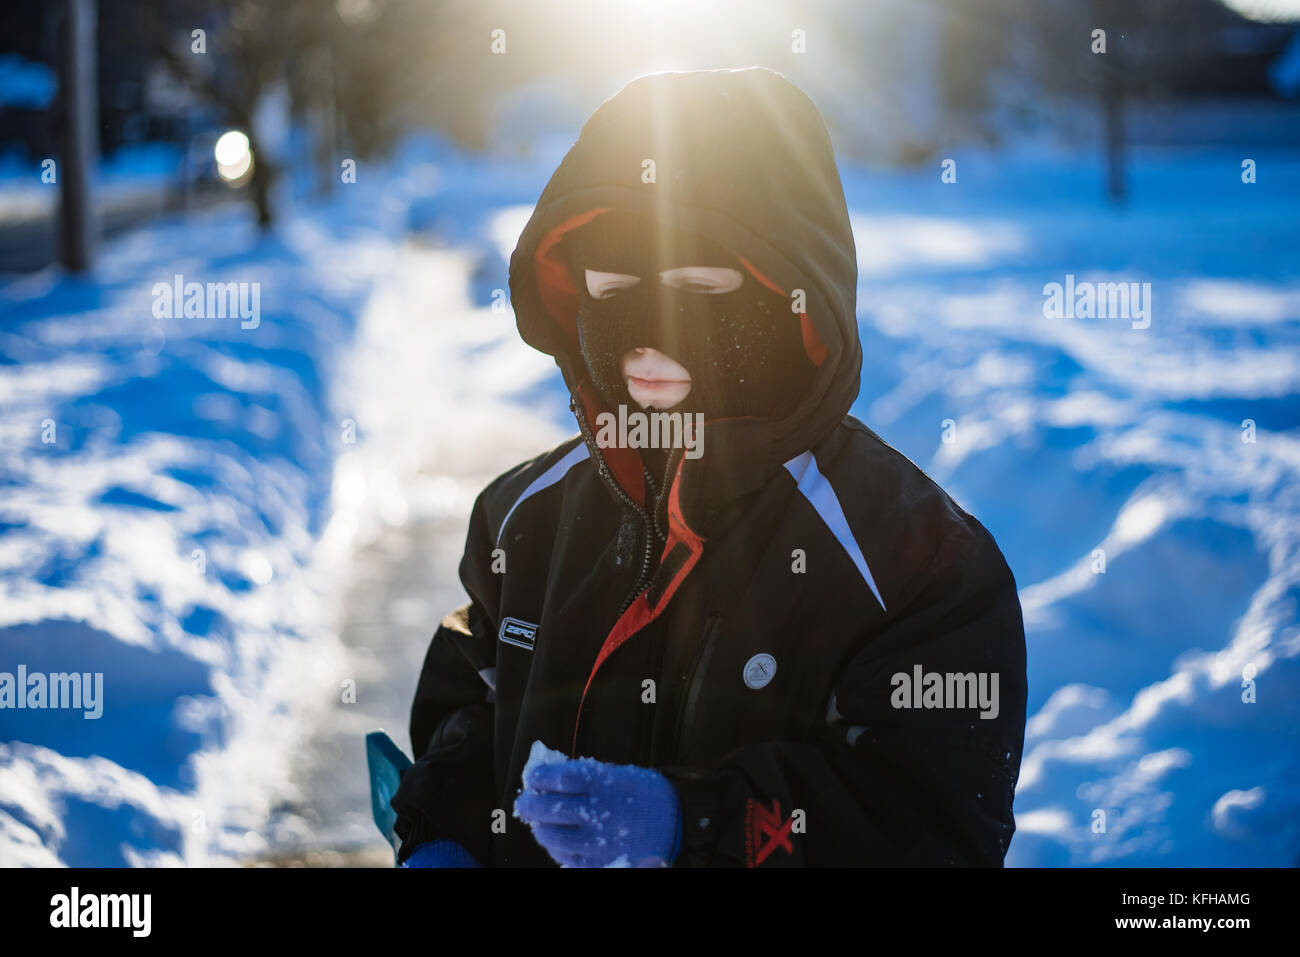 10-11 year old boy standing in snow with ski mask - Stock Image